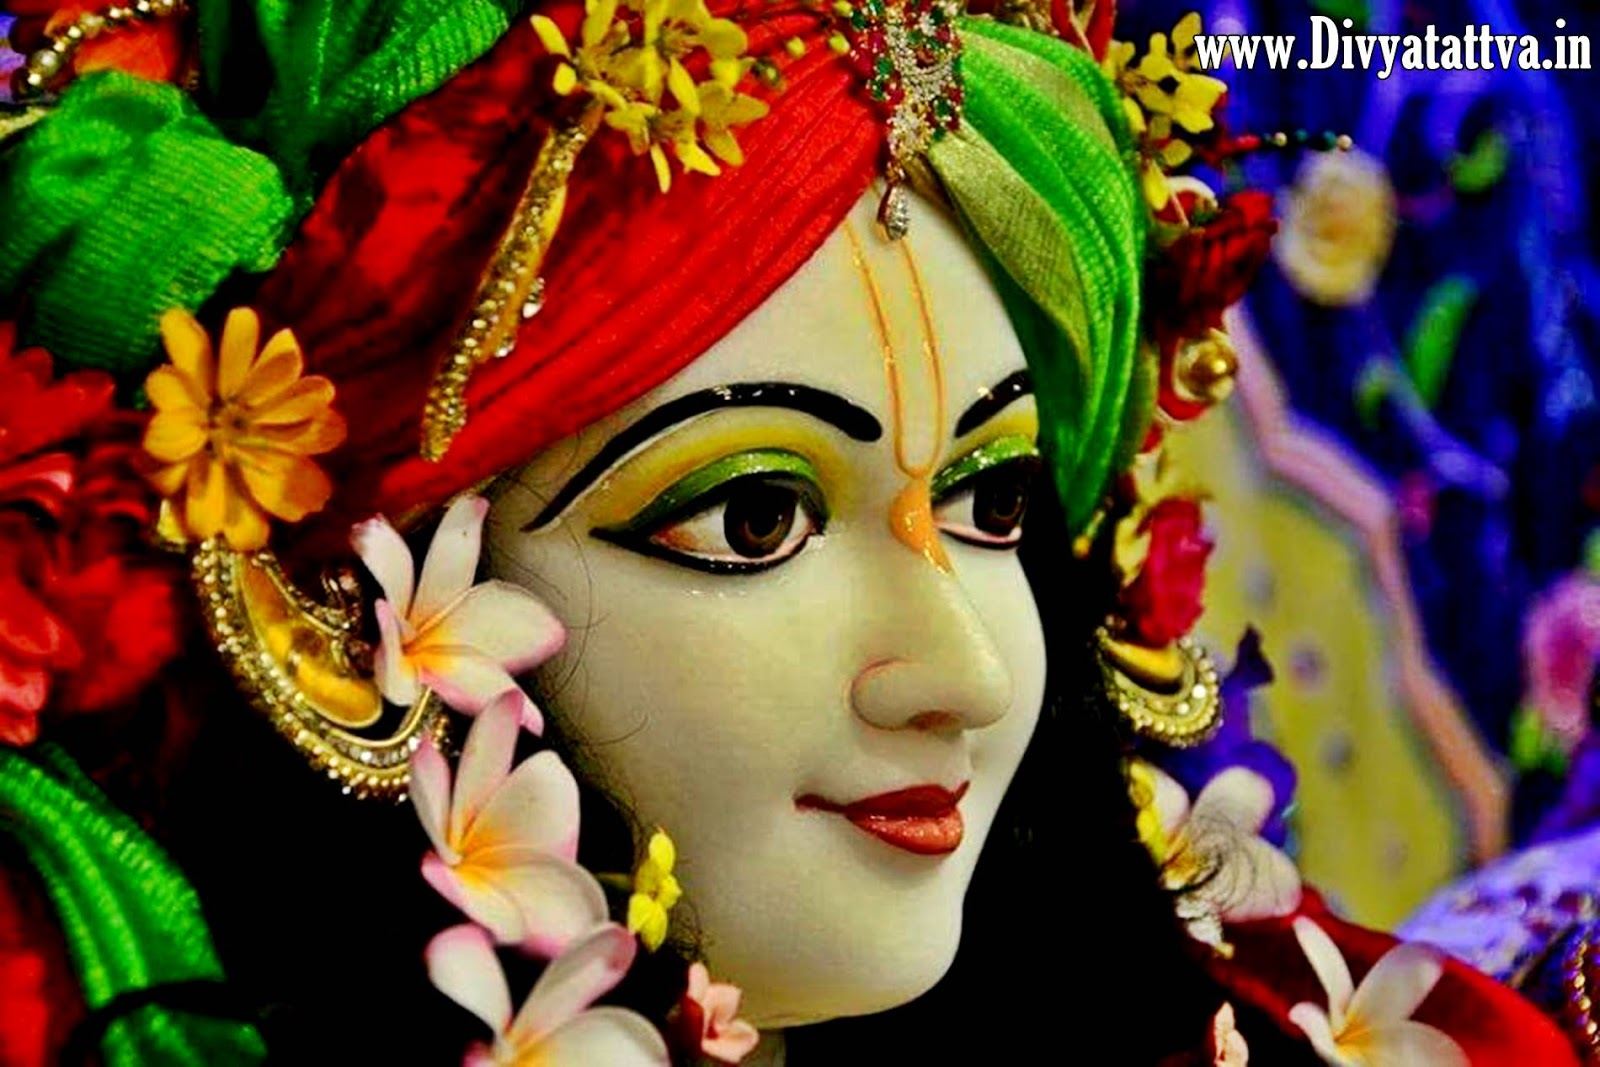 Shri krishna hd pc wallpaper